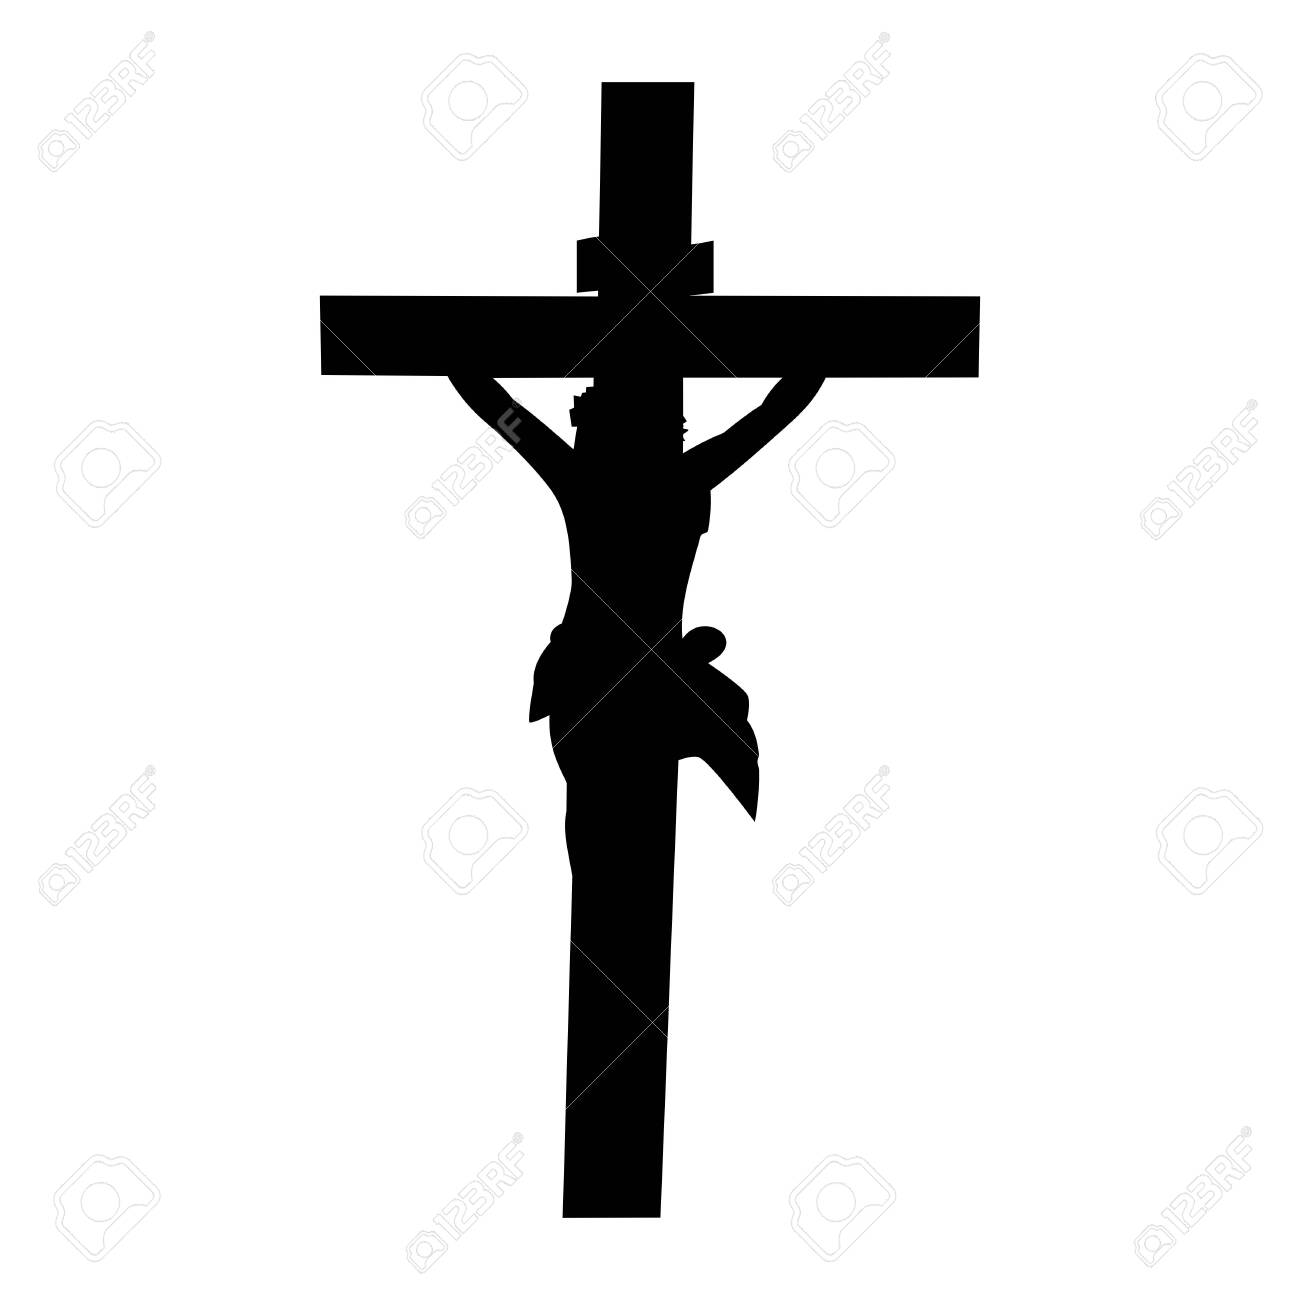 The silhouette of jesus crucified vector - 140812939